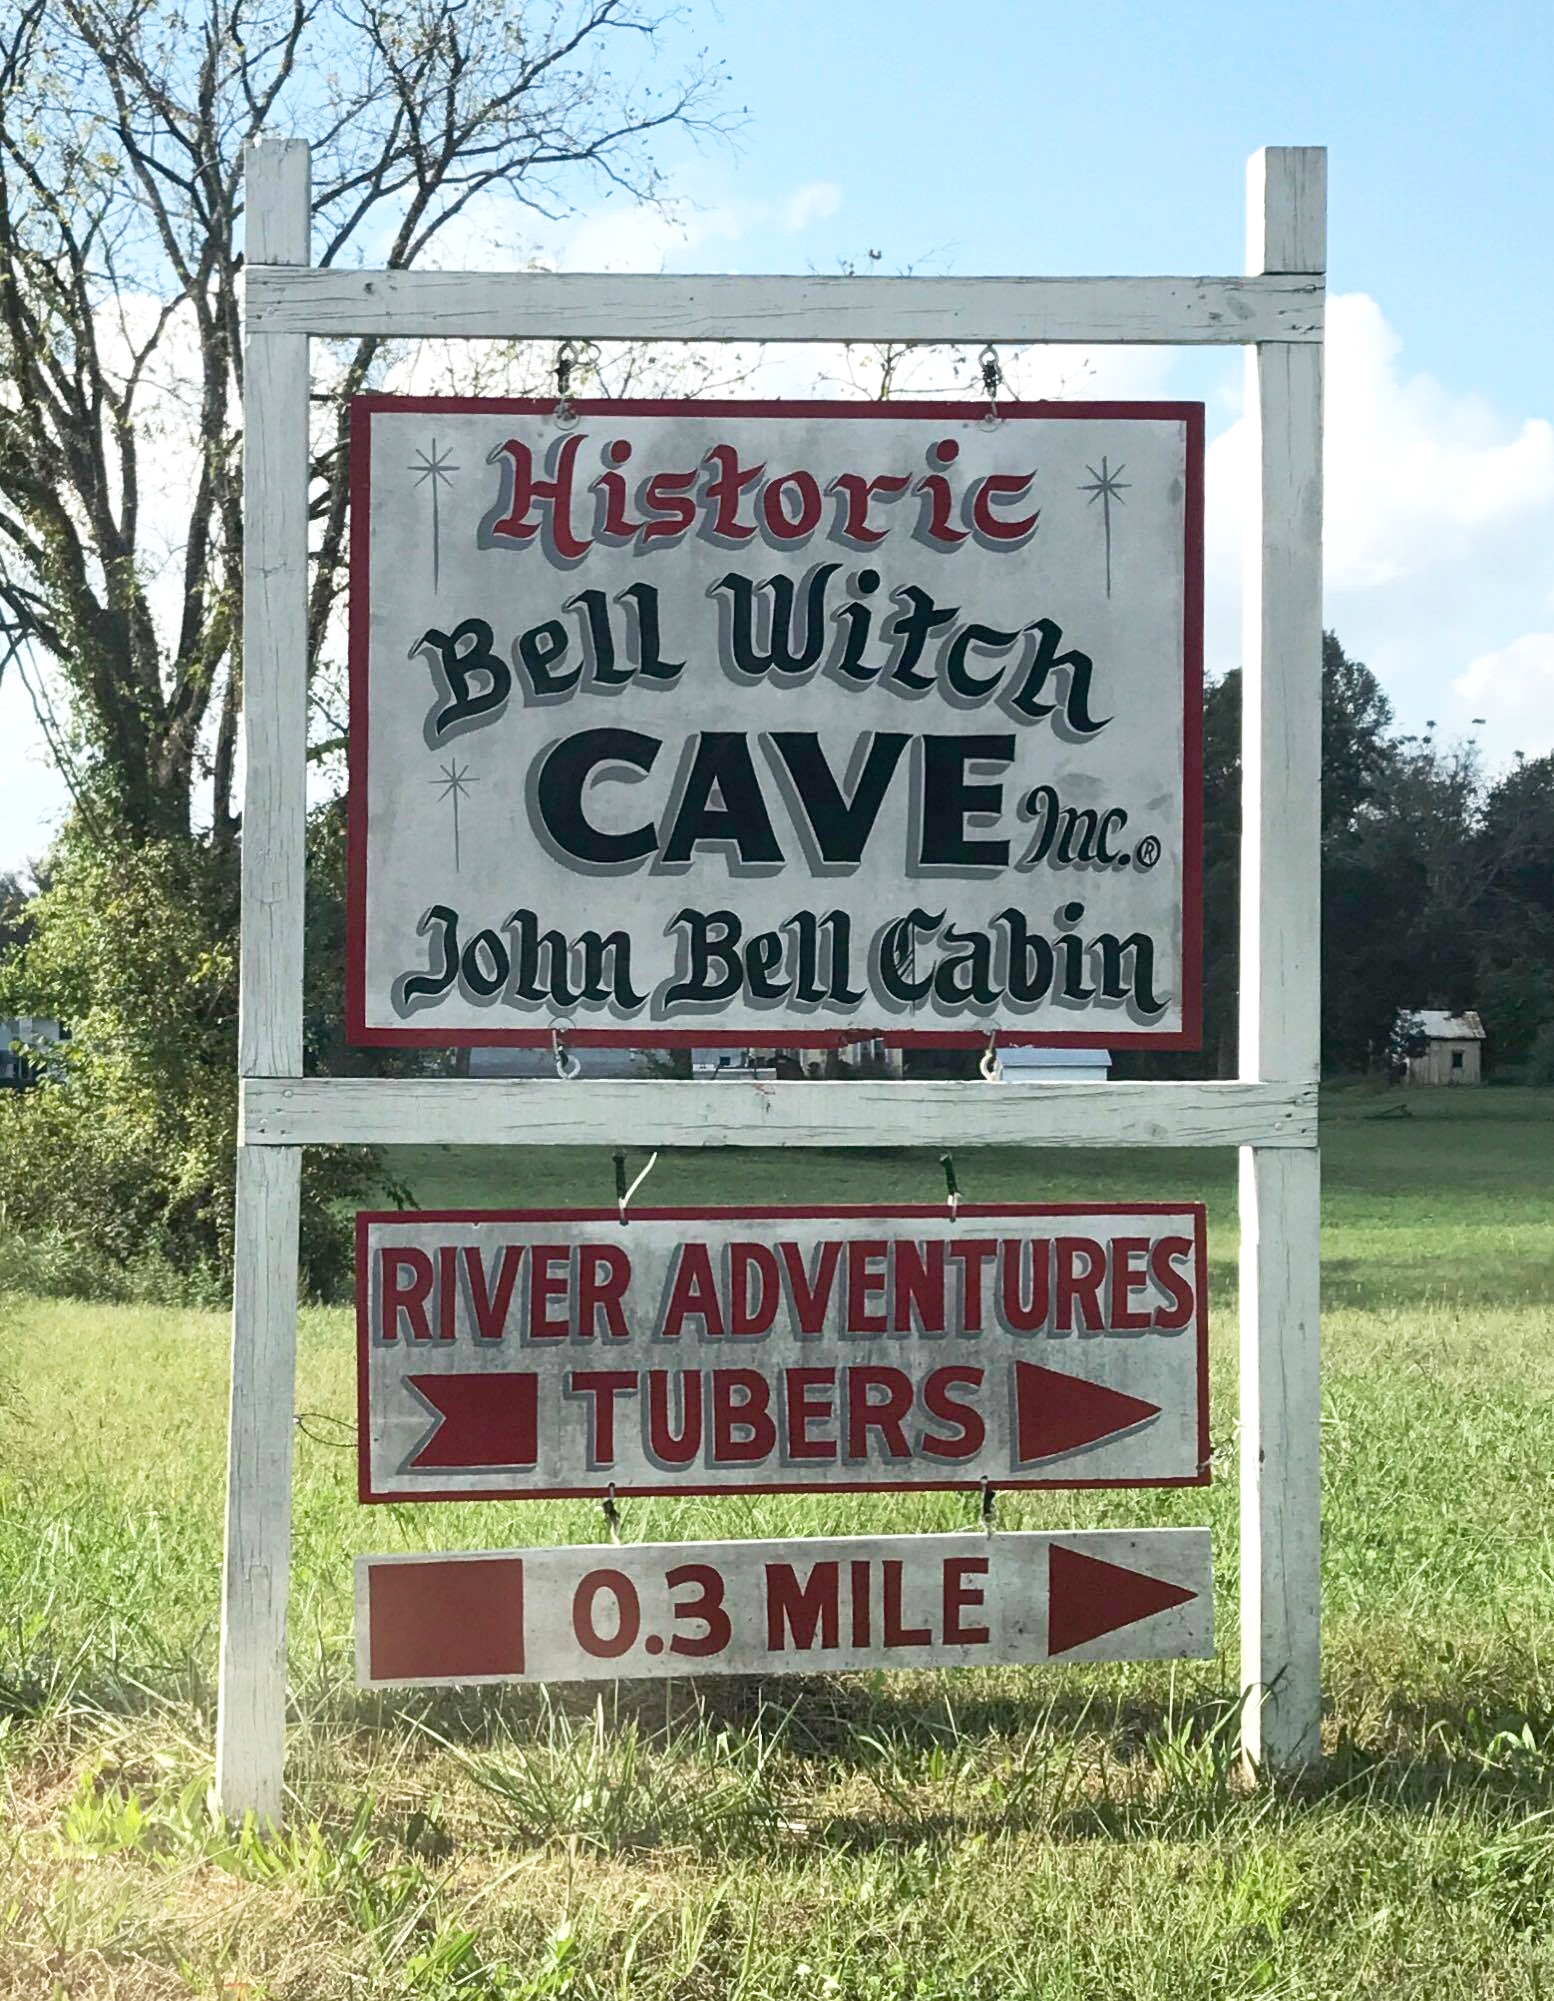 Photos of the Bell Witch Cave tour courtesy of listener Liz Shadbolt